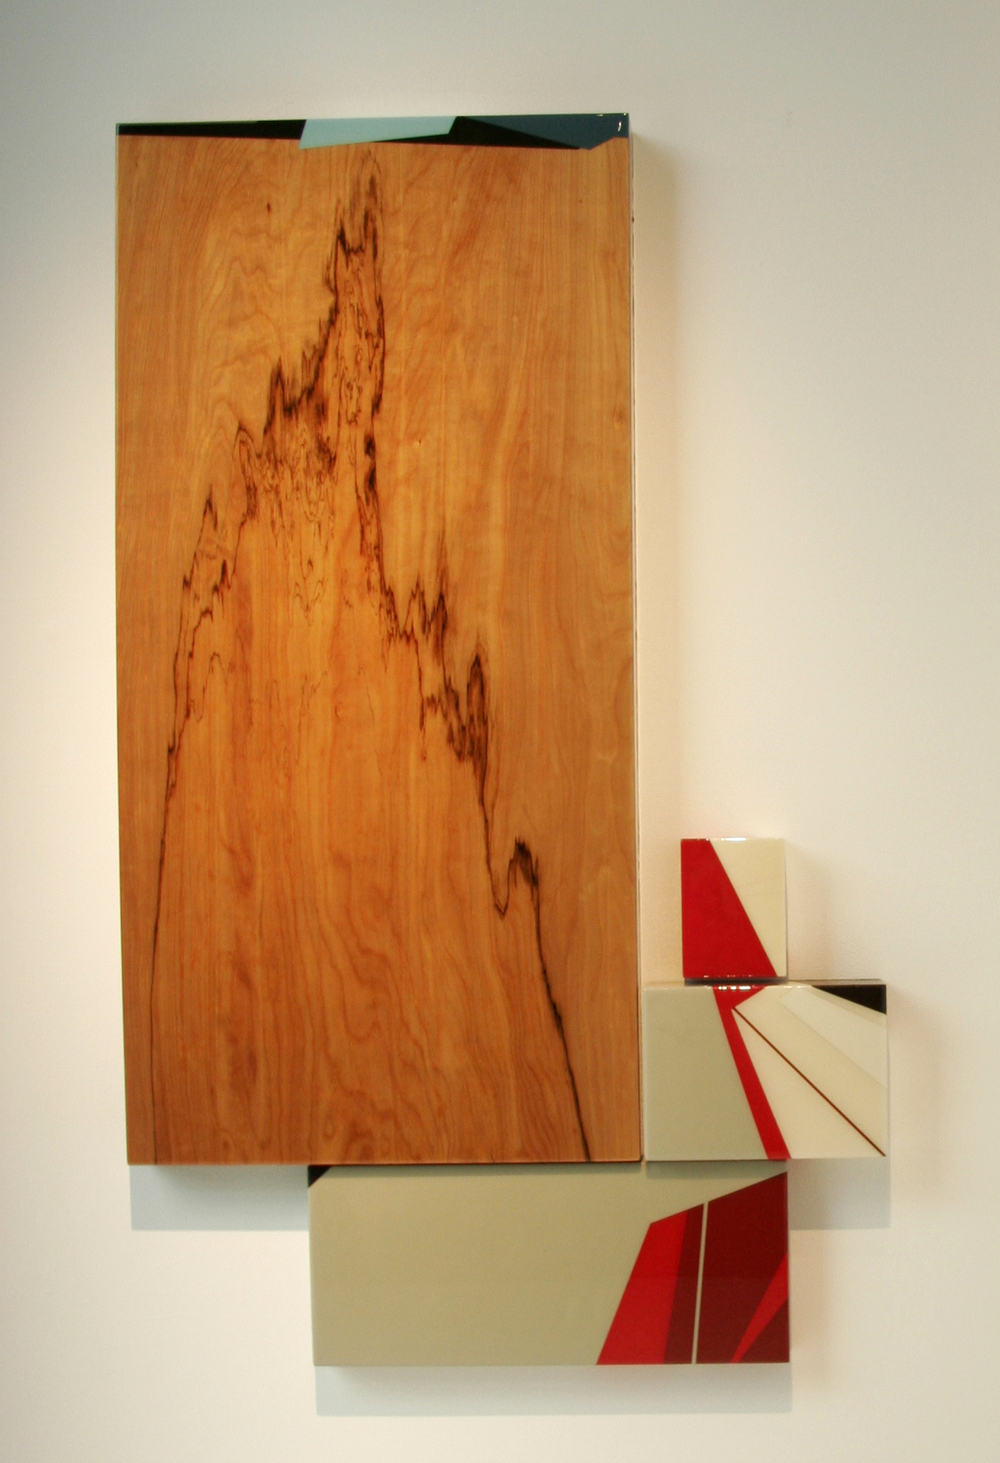 Puzzle 22  Acrylic, unknown hardwood, MDF, UV resin (1) 30x60x3.5in, (1) 12x24x2in, (1) 12x16x3in, (1) 6x8x3in